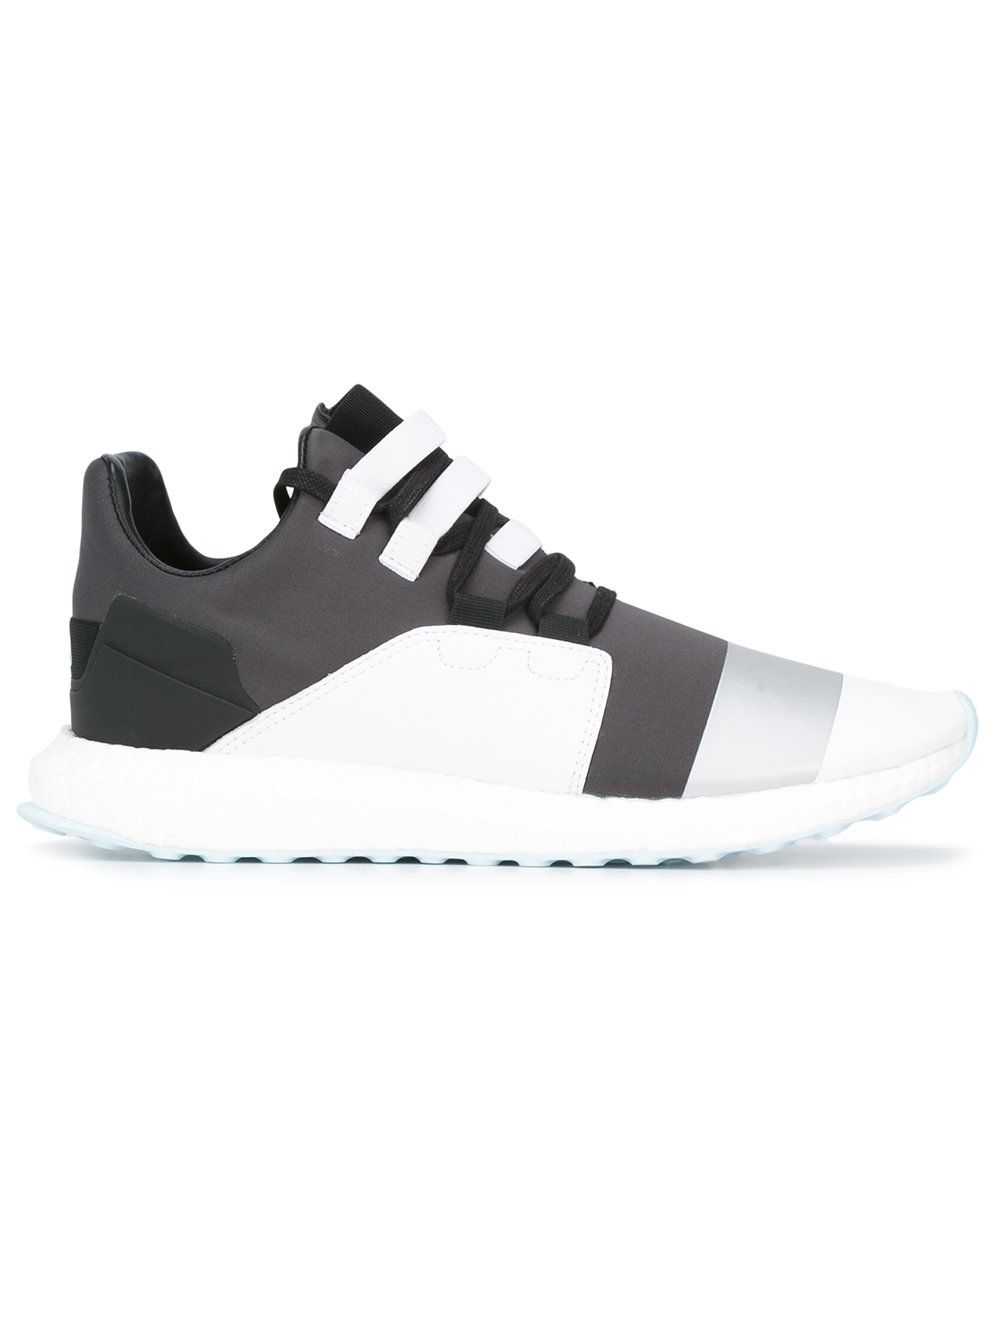 83f65809b109 Y-3 lace-up sneakers BLACK Men Shoes Trainers